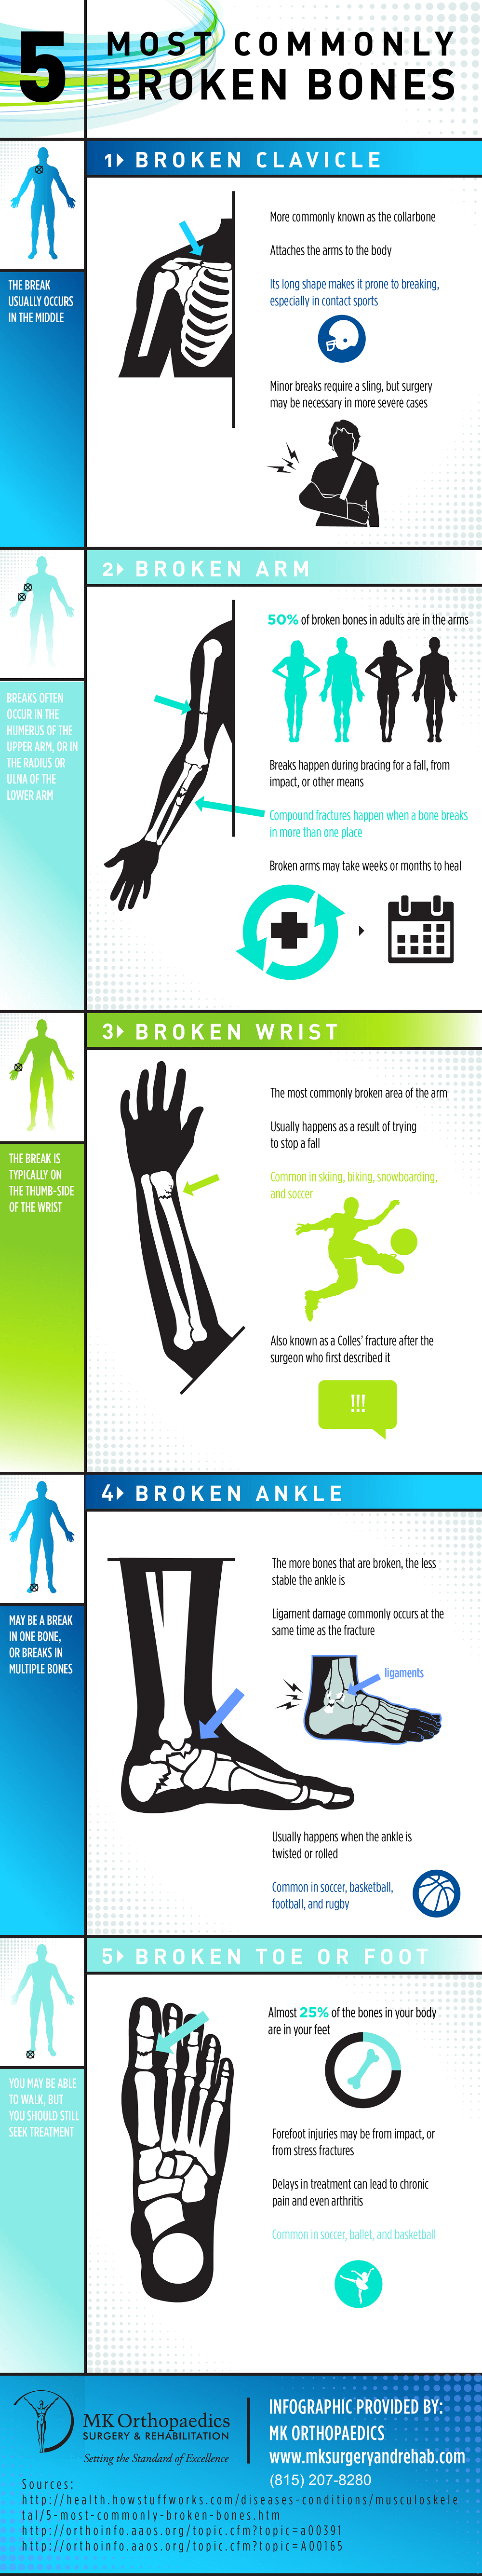 Infographic of the 5 Most Commonly Broken Bones. Did you